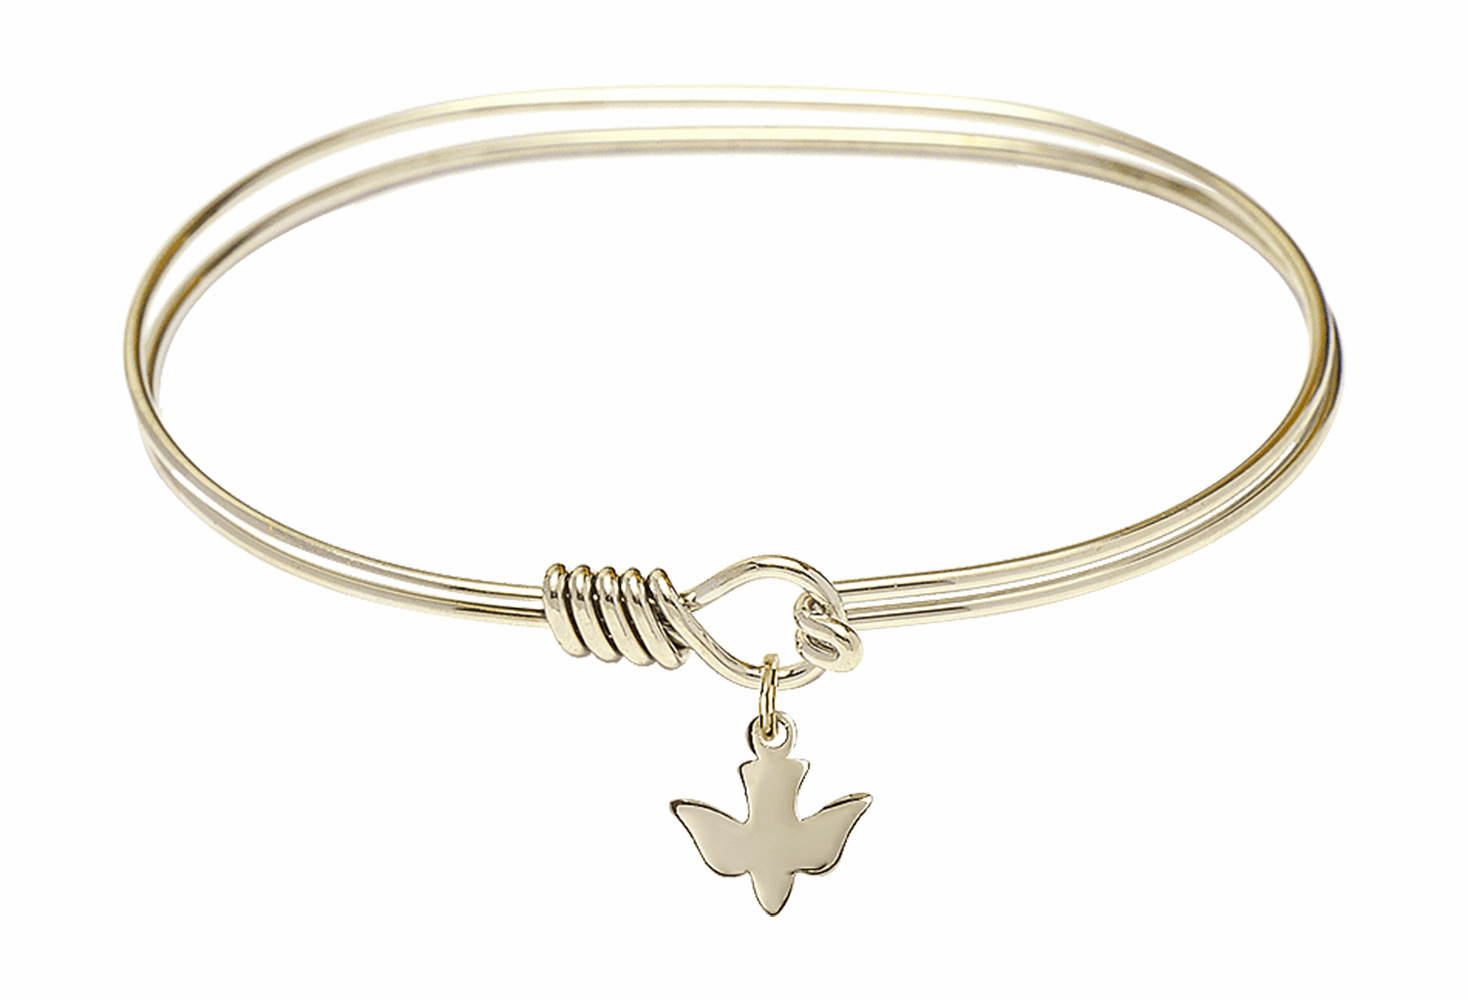 Round Eye Hook Bangle Bracelet w/Holy Confirmation Dove 14kt Gold-filled Charm by Bliss Mfg